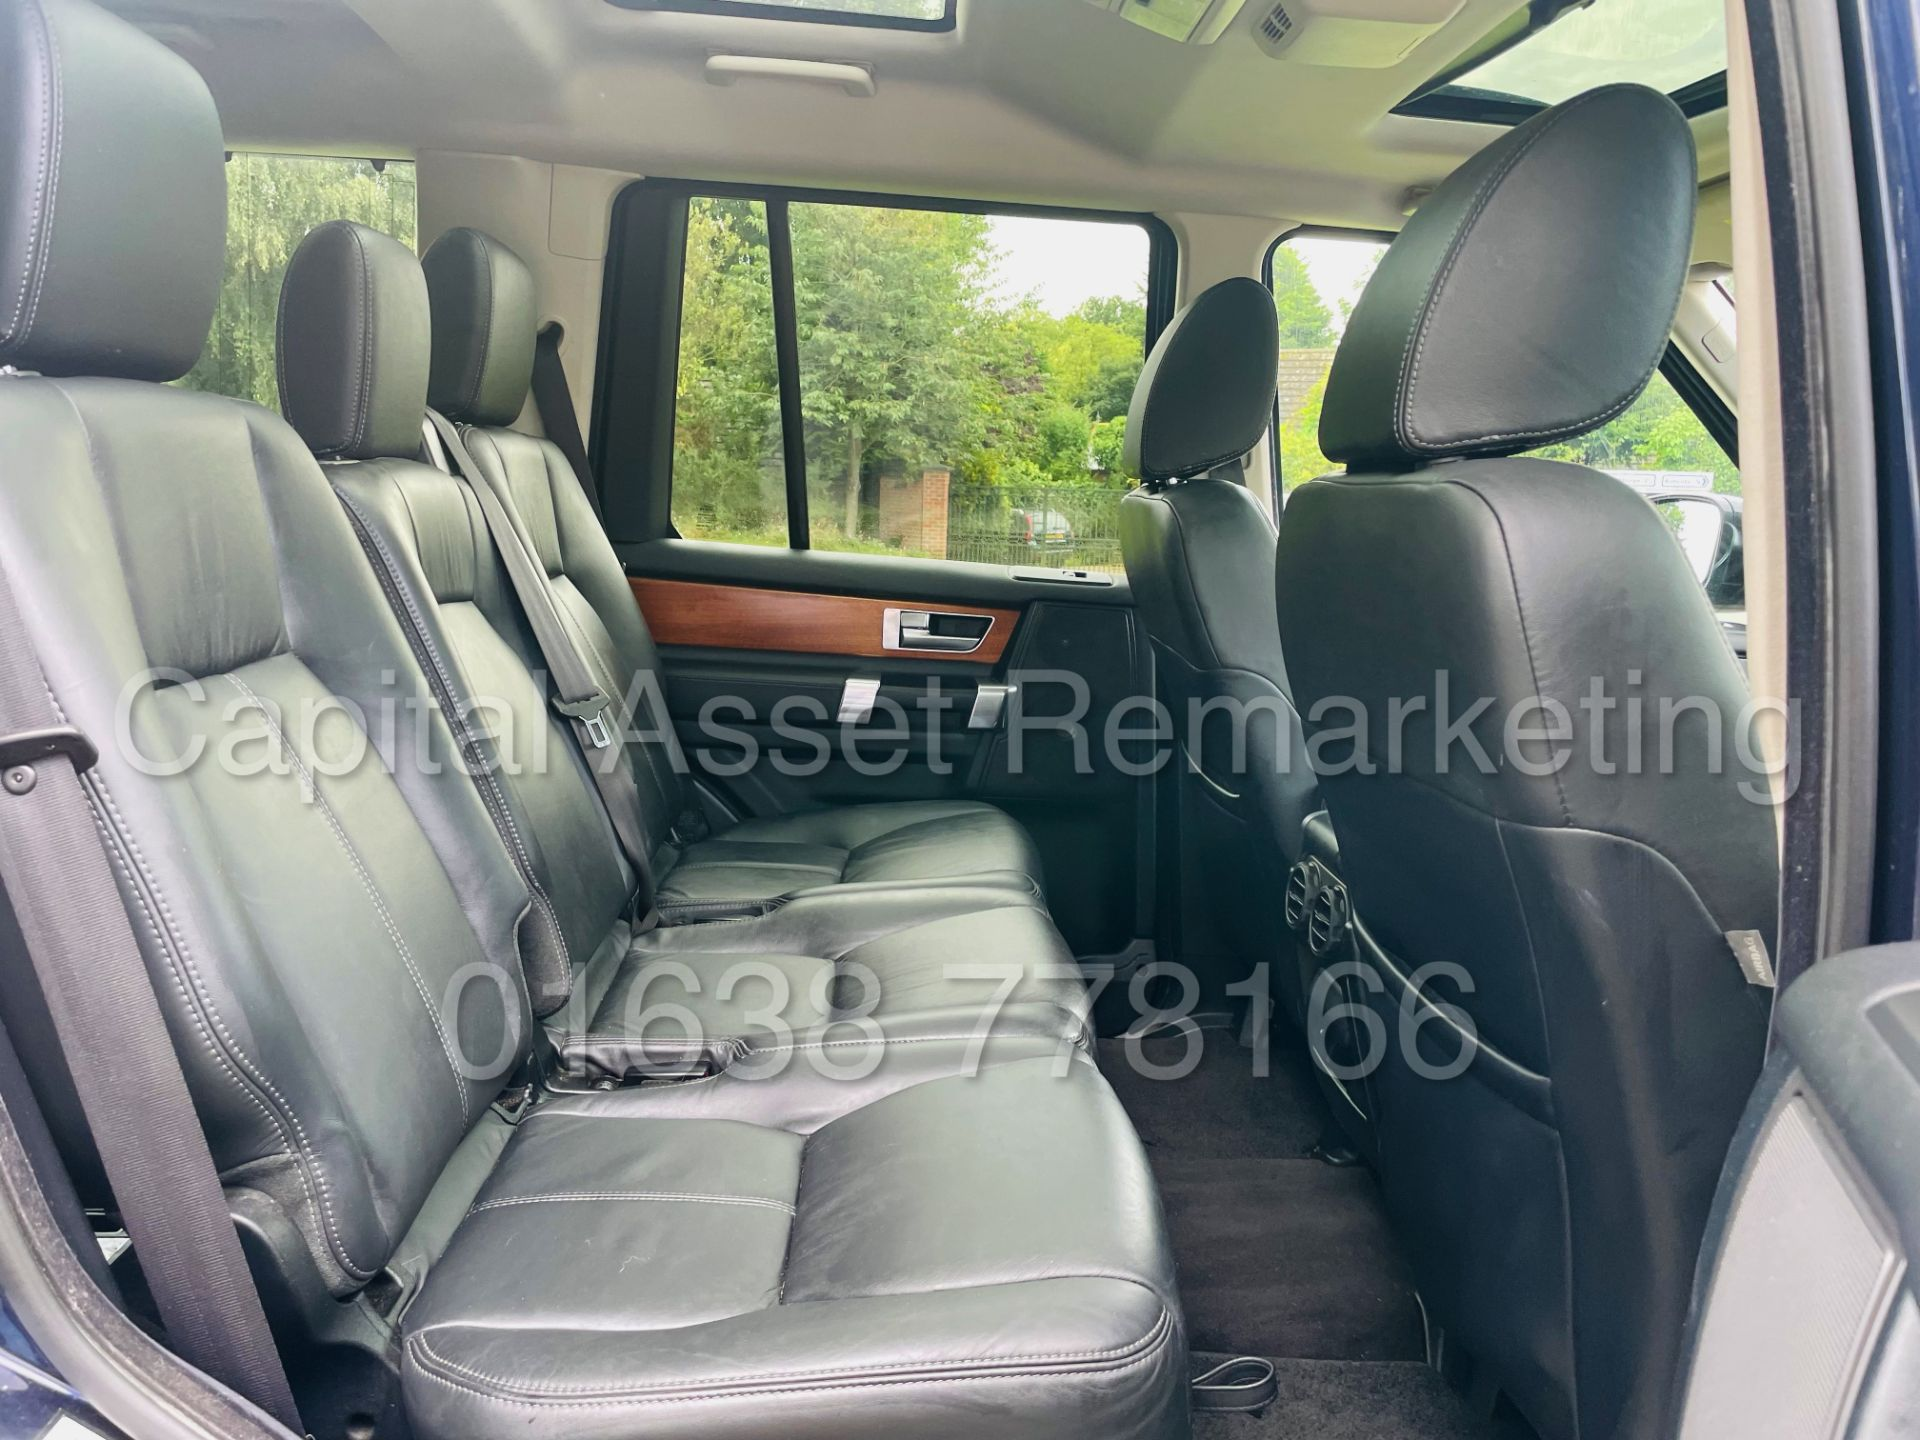 LAND ROVER DISCOVERY 4 *HSE* 7 SEATER SUV (2014 - NEW MODEL) '3.0 SDV6 - 255 BHP - 8 SPEED AUTO' - Image 35 of 61